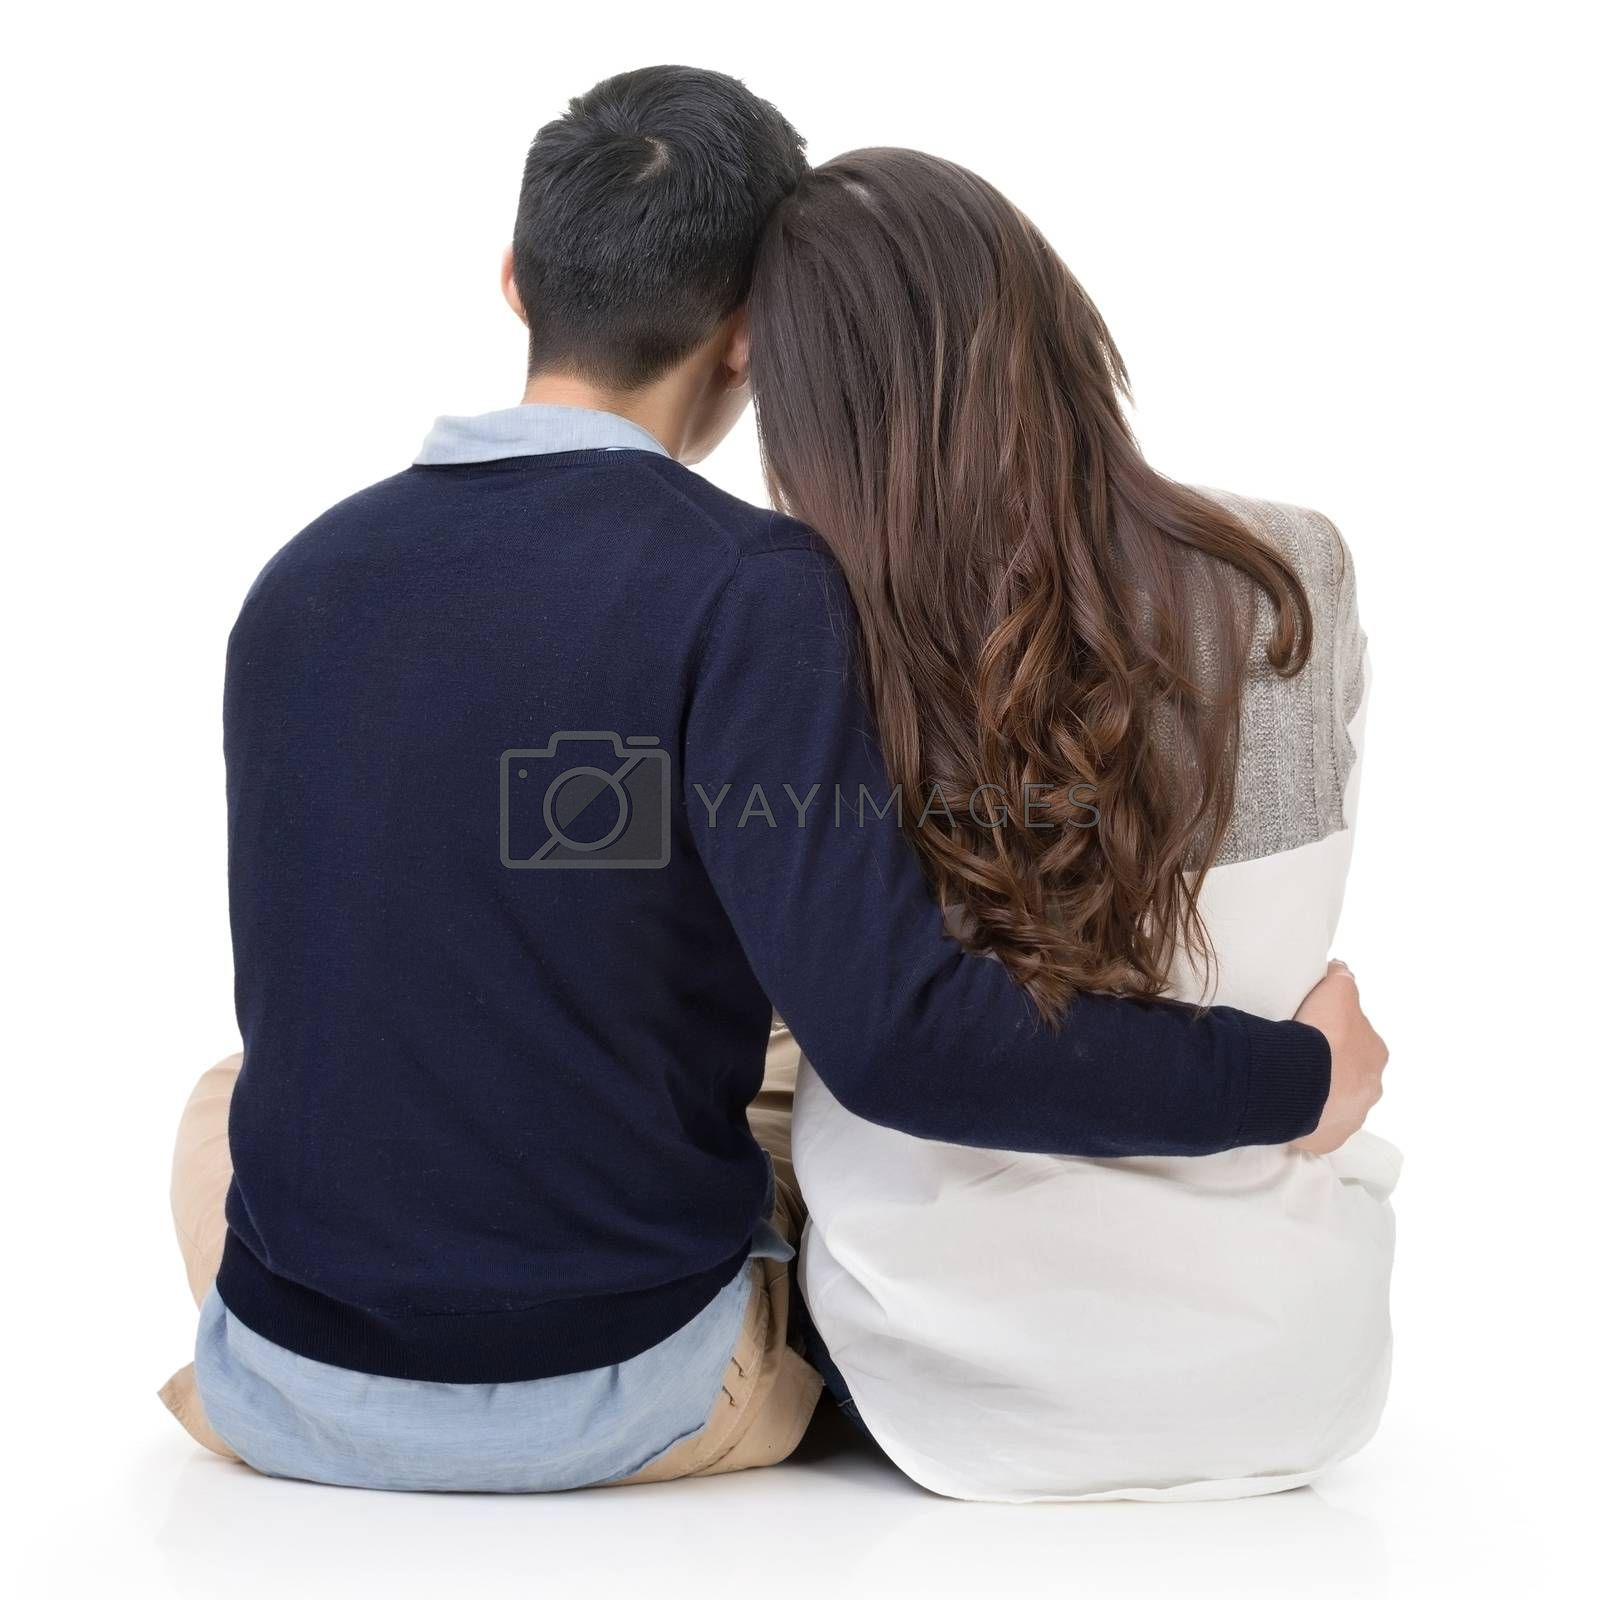 Royalty free image of Young couple sitting on ground and hugging by elwynn